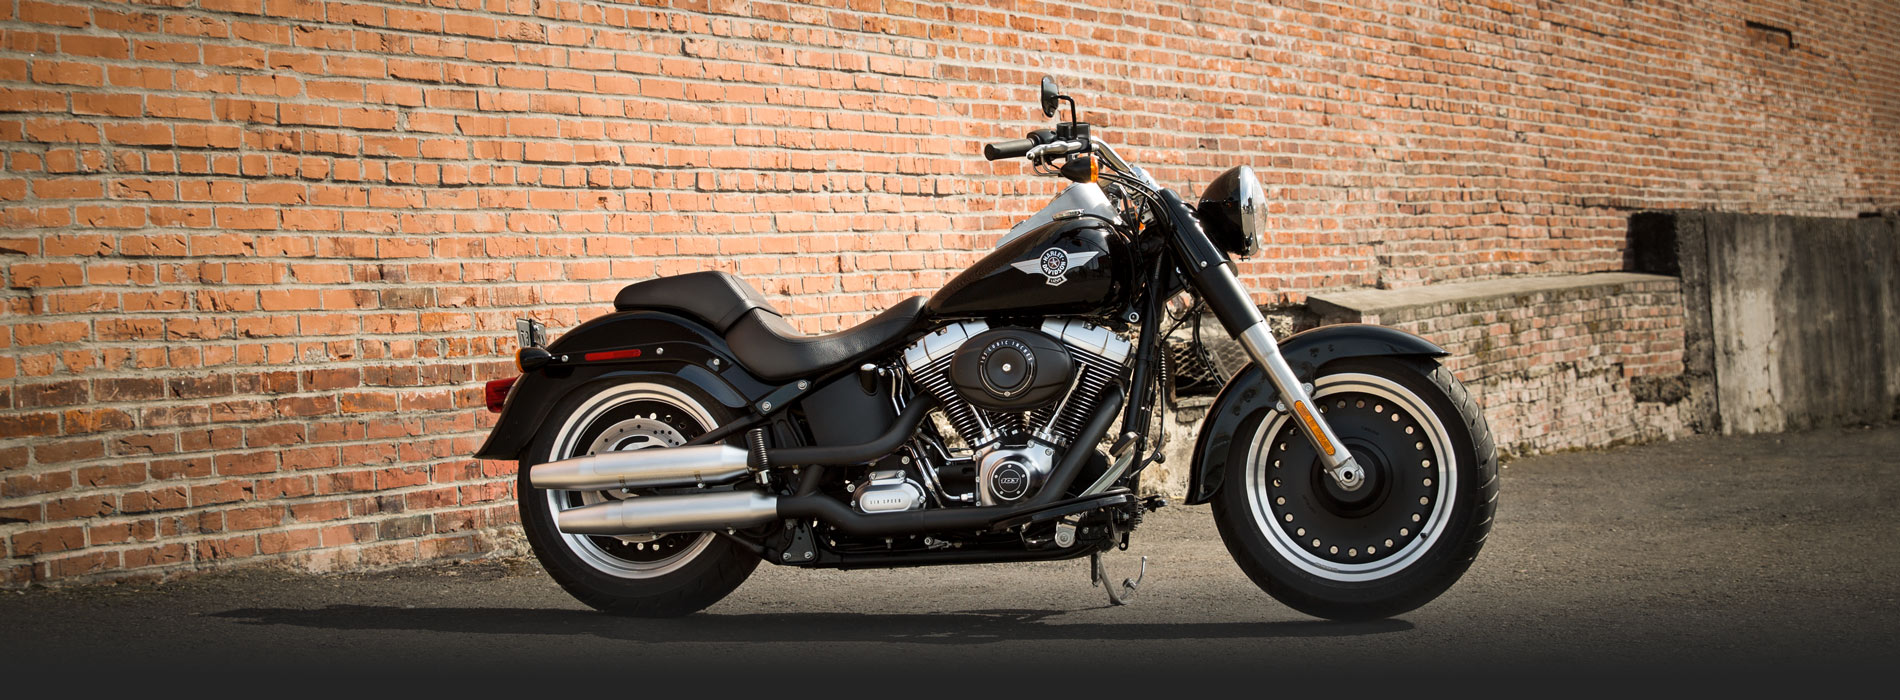 2014 Harley-Davidson Softail Fat Boy Lo #9